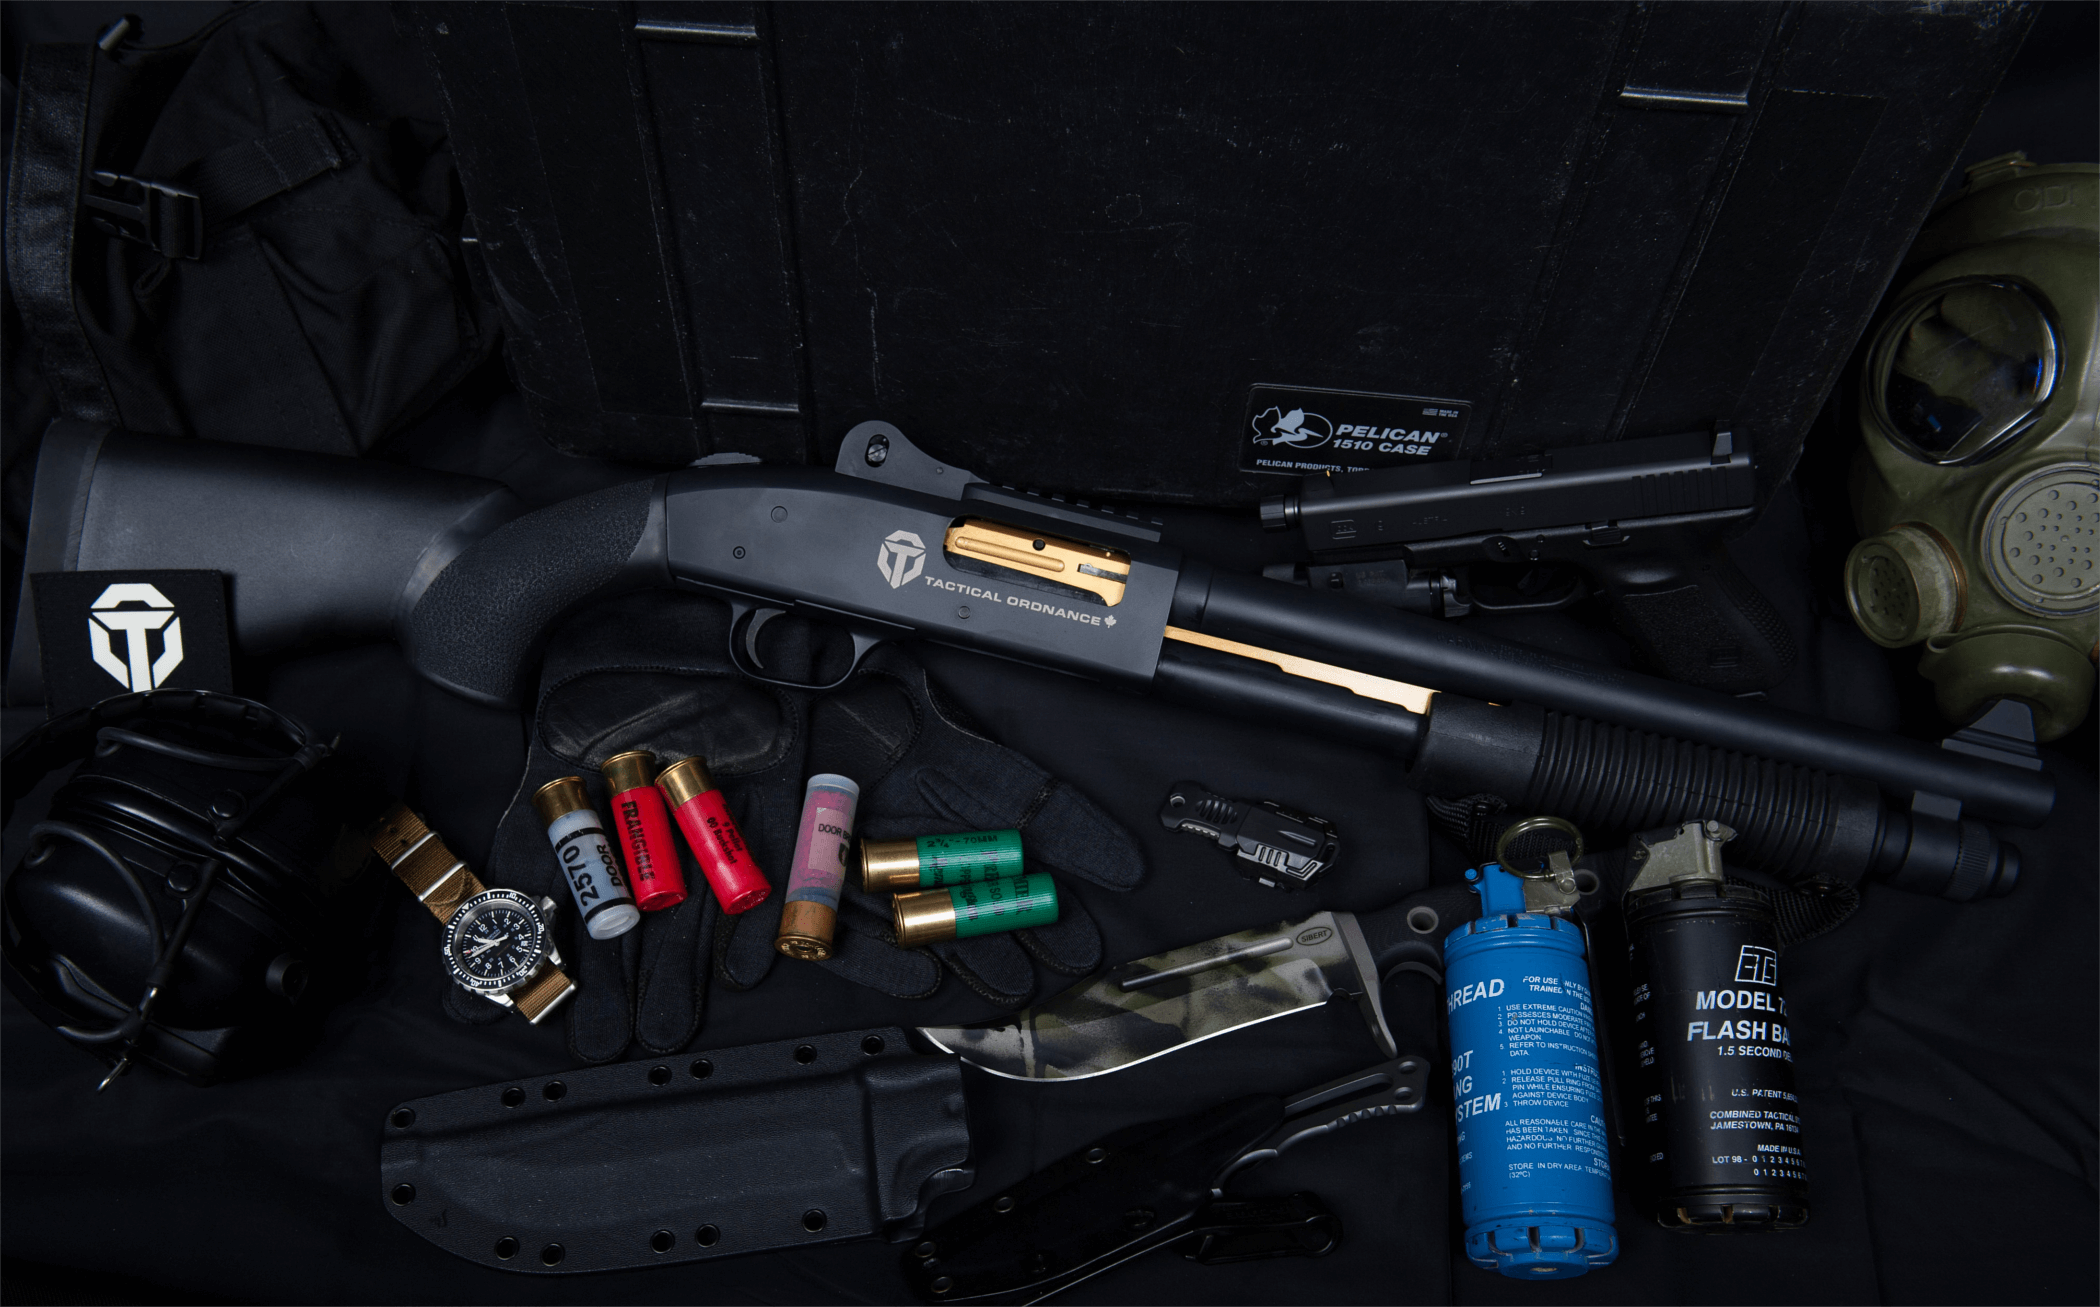 The 8 Best Shotguns For Home Defense Improb